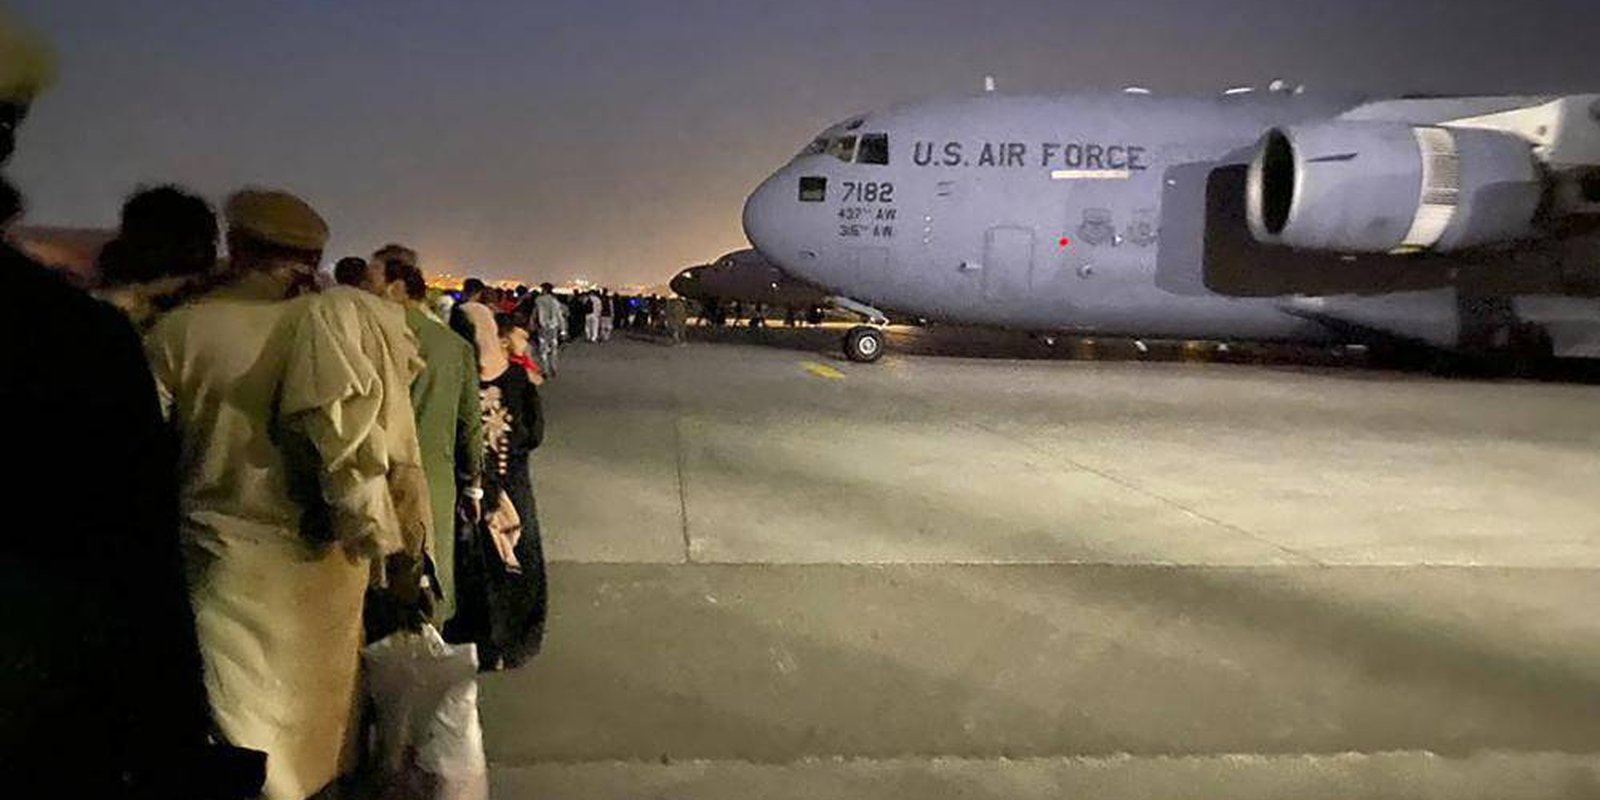 Image — Afghansqueue toboard a US military aircraftto leave Afghanistanat the military airport in Kabul after the Taliban'stakeover. Photo by SHAKIB RAHMANI/AFP via Getty Images.